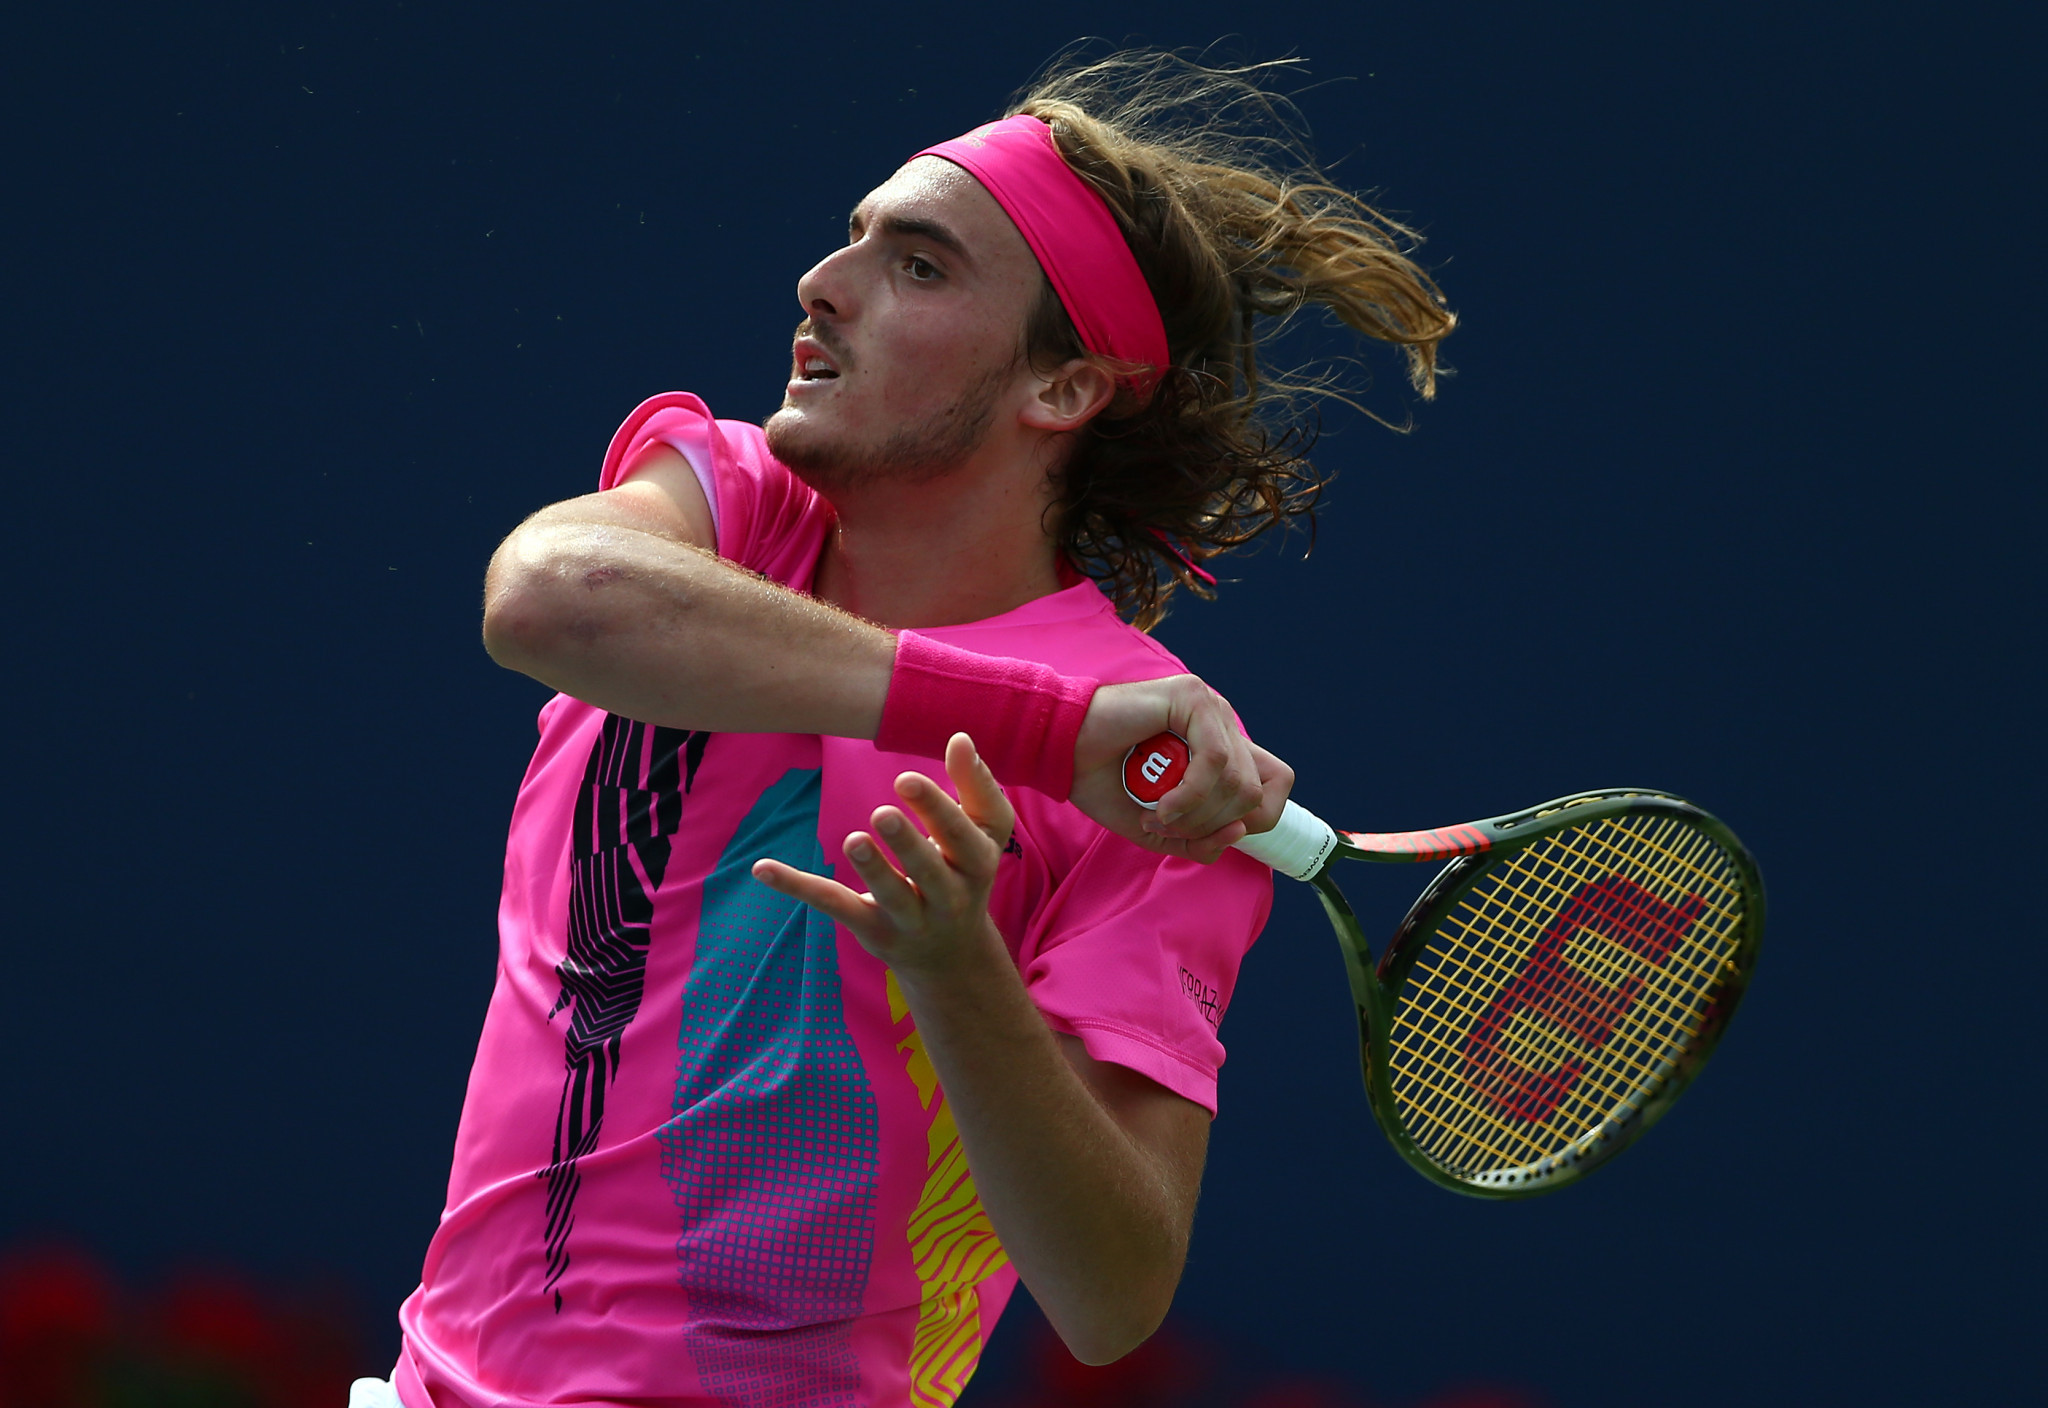 Stefanos Tsitsipas of Greece stunned Novak Djokovic with a three-set victory at the Rogers Cup in Toronto ©Getty Images